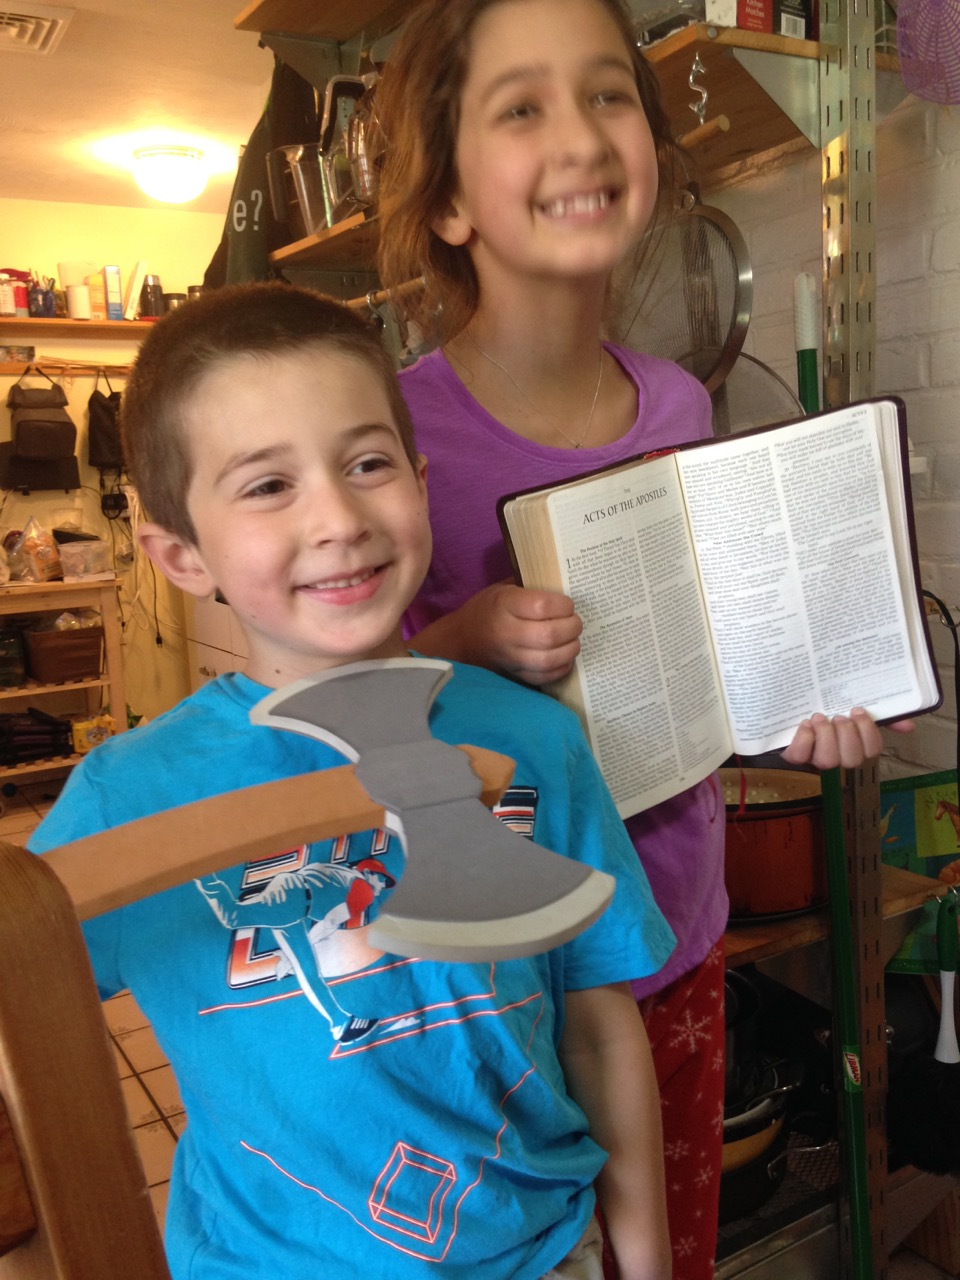 Ben with the Ax and Bella with the Acts of the Apostles